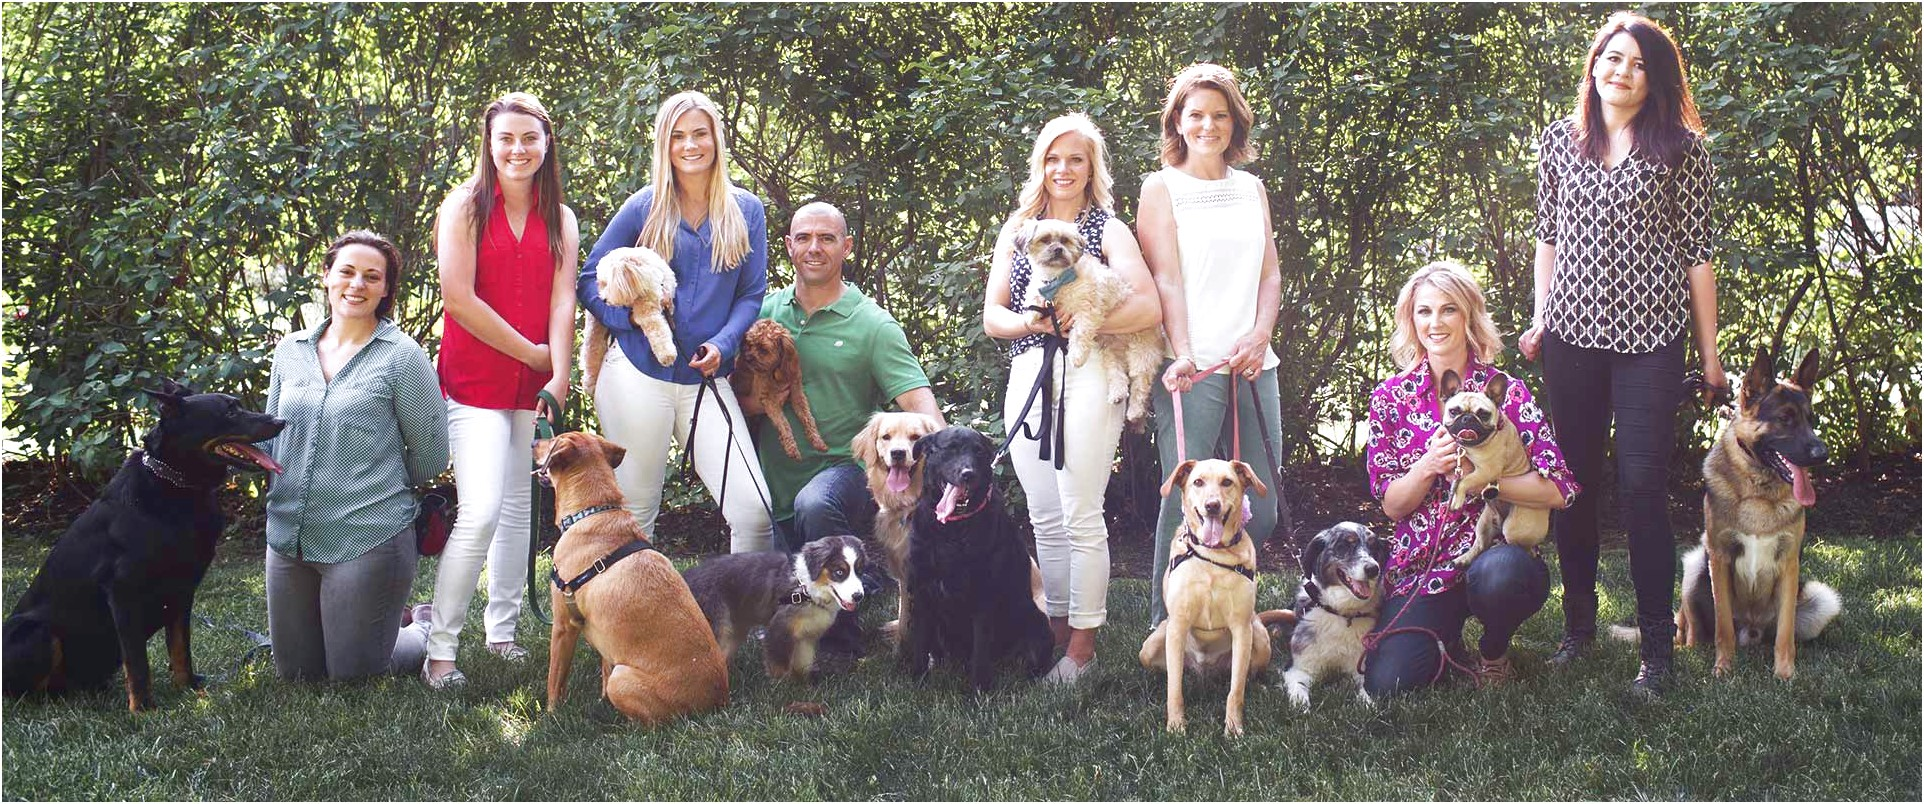 Dog Training Kansas City